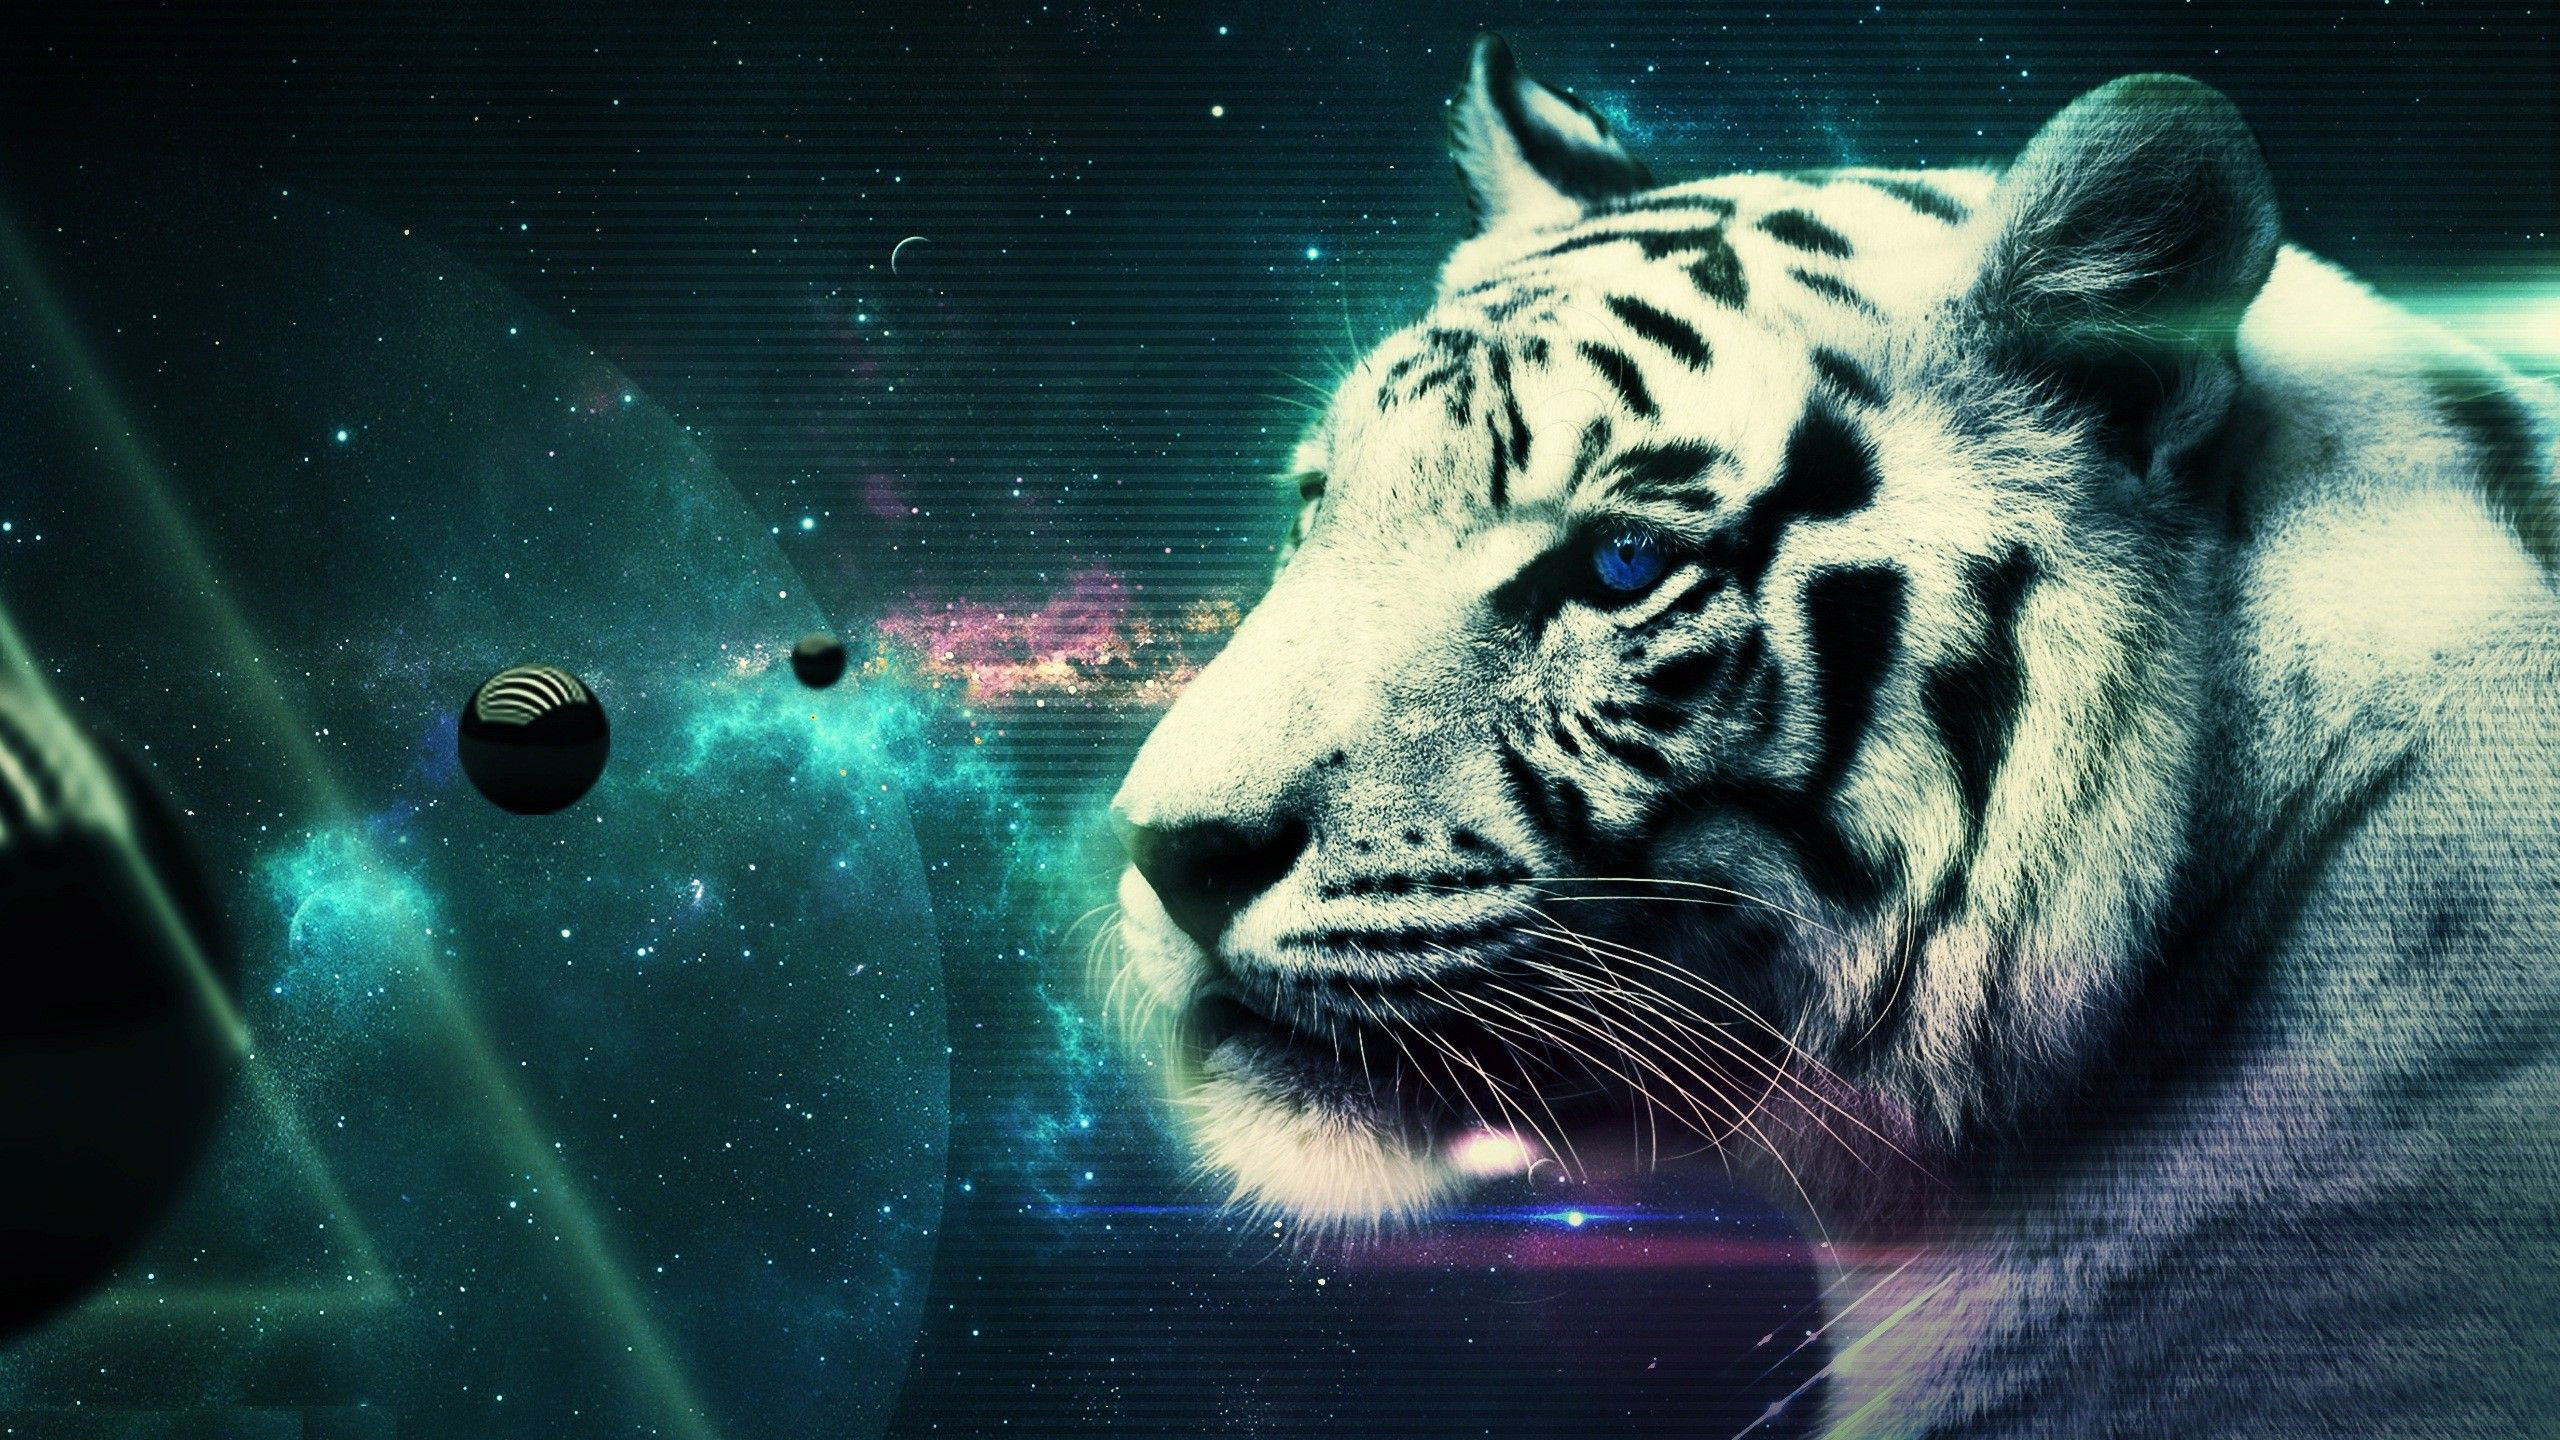 2560x1440 free cool wallpapers of tigers with cool wall papers.